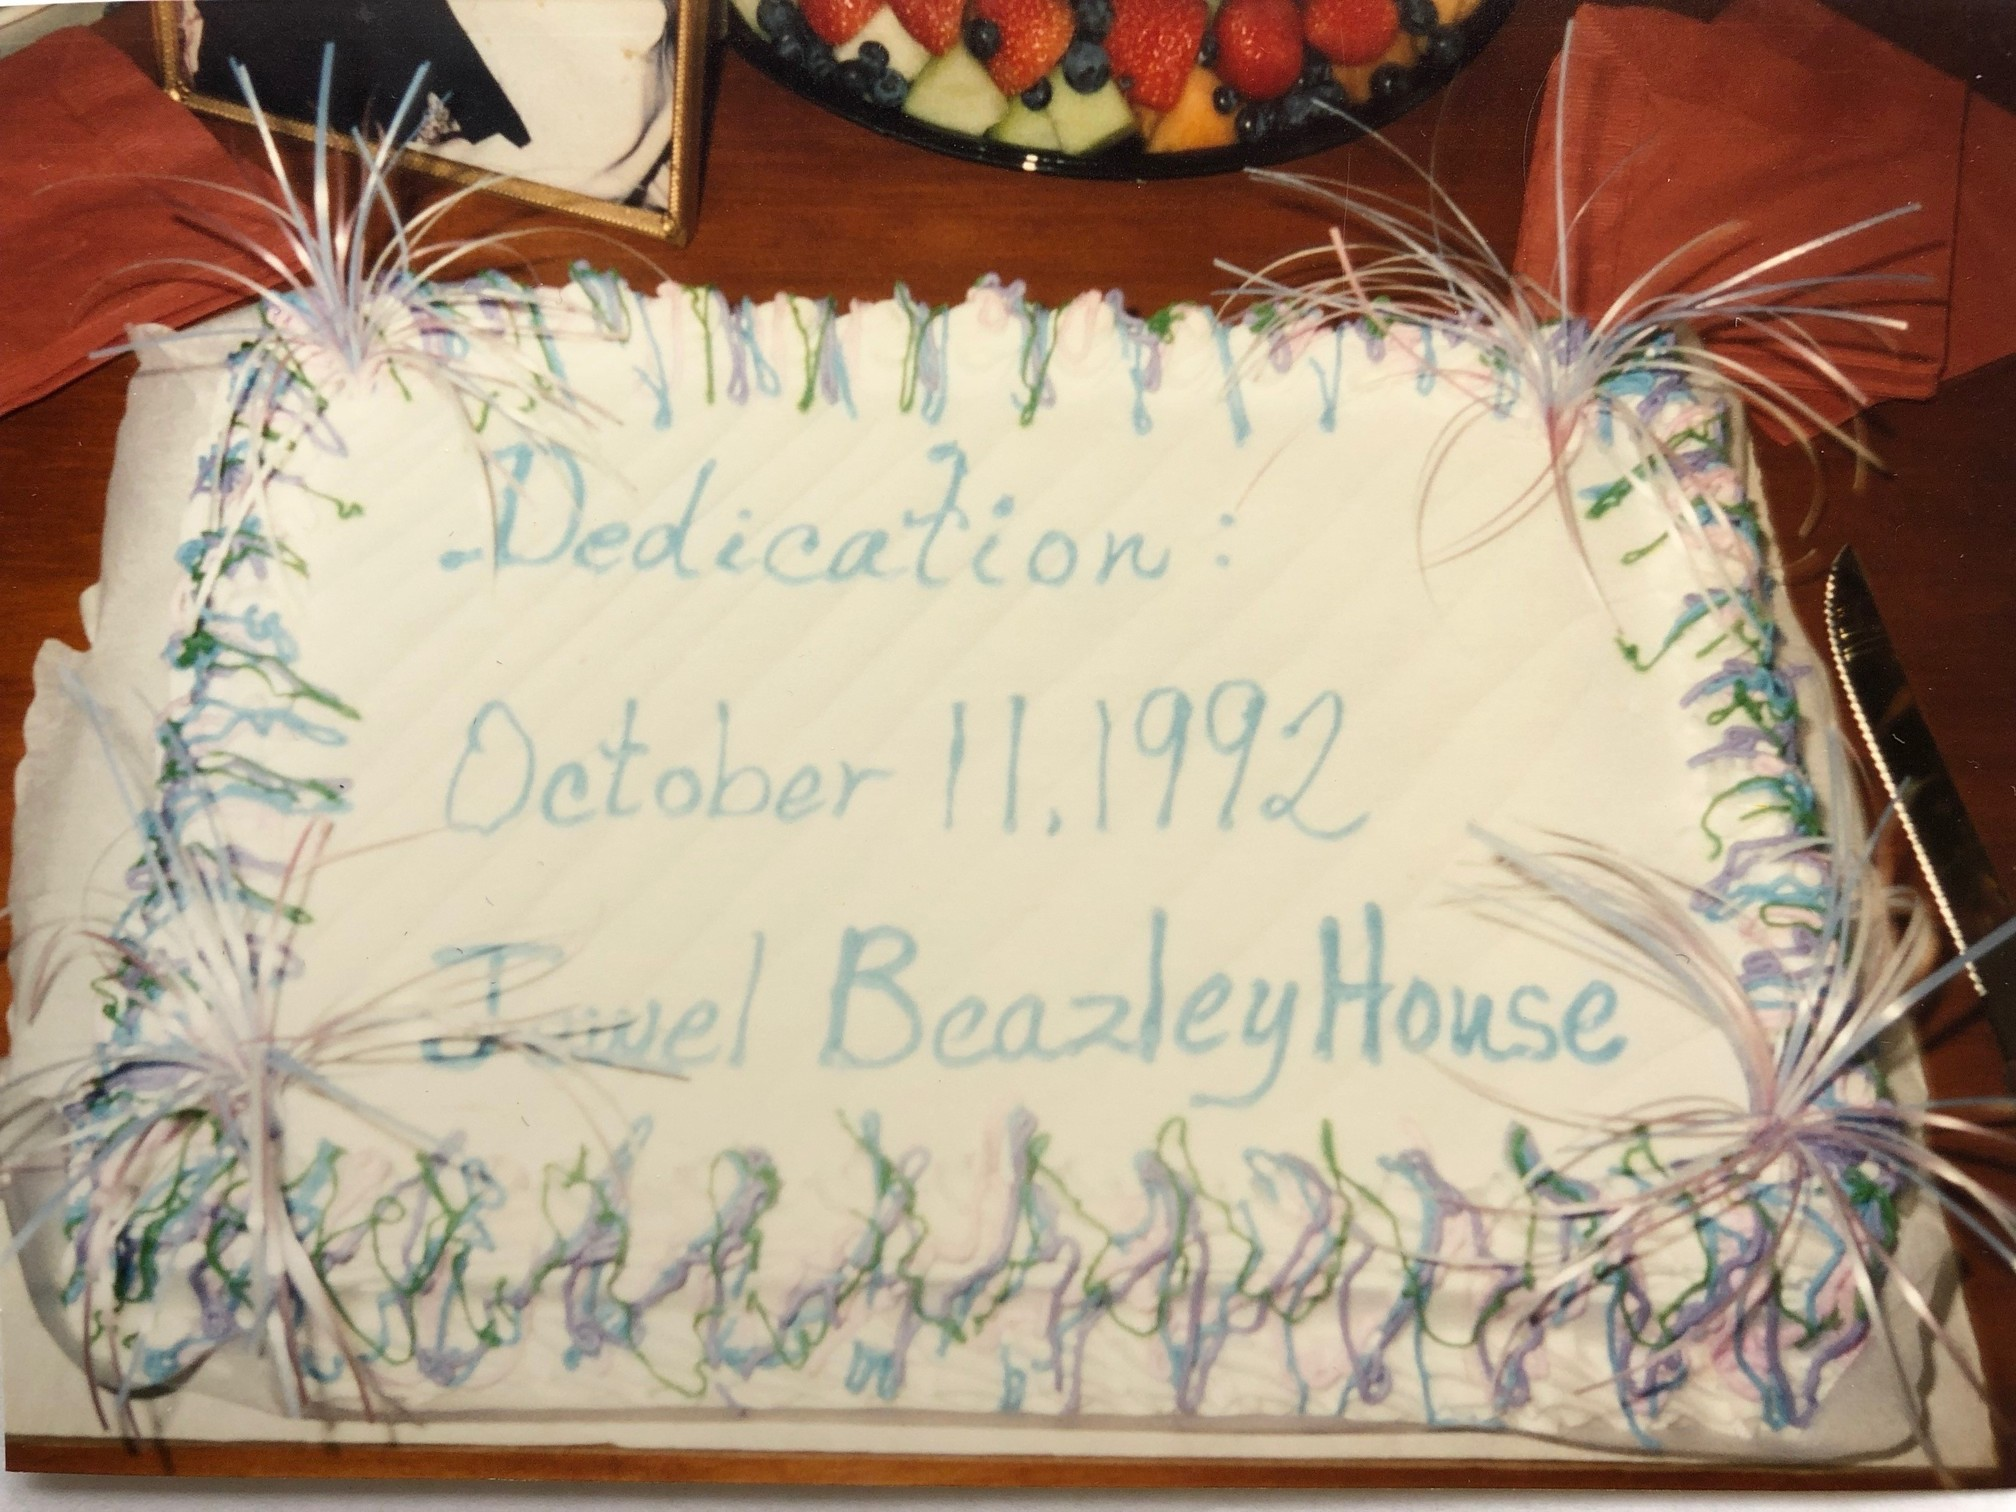 Beazley_House_dedication_cake_1992_1_resized.jpg